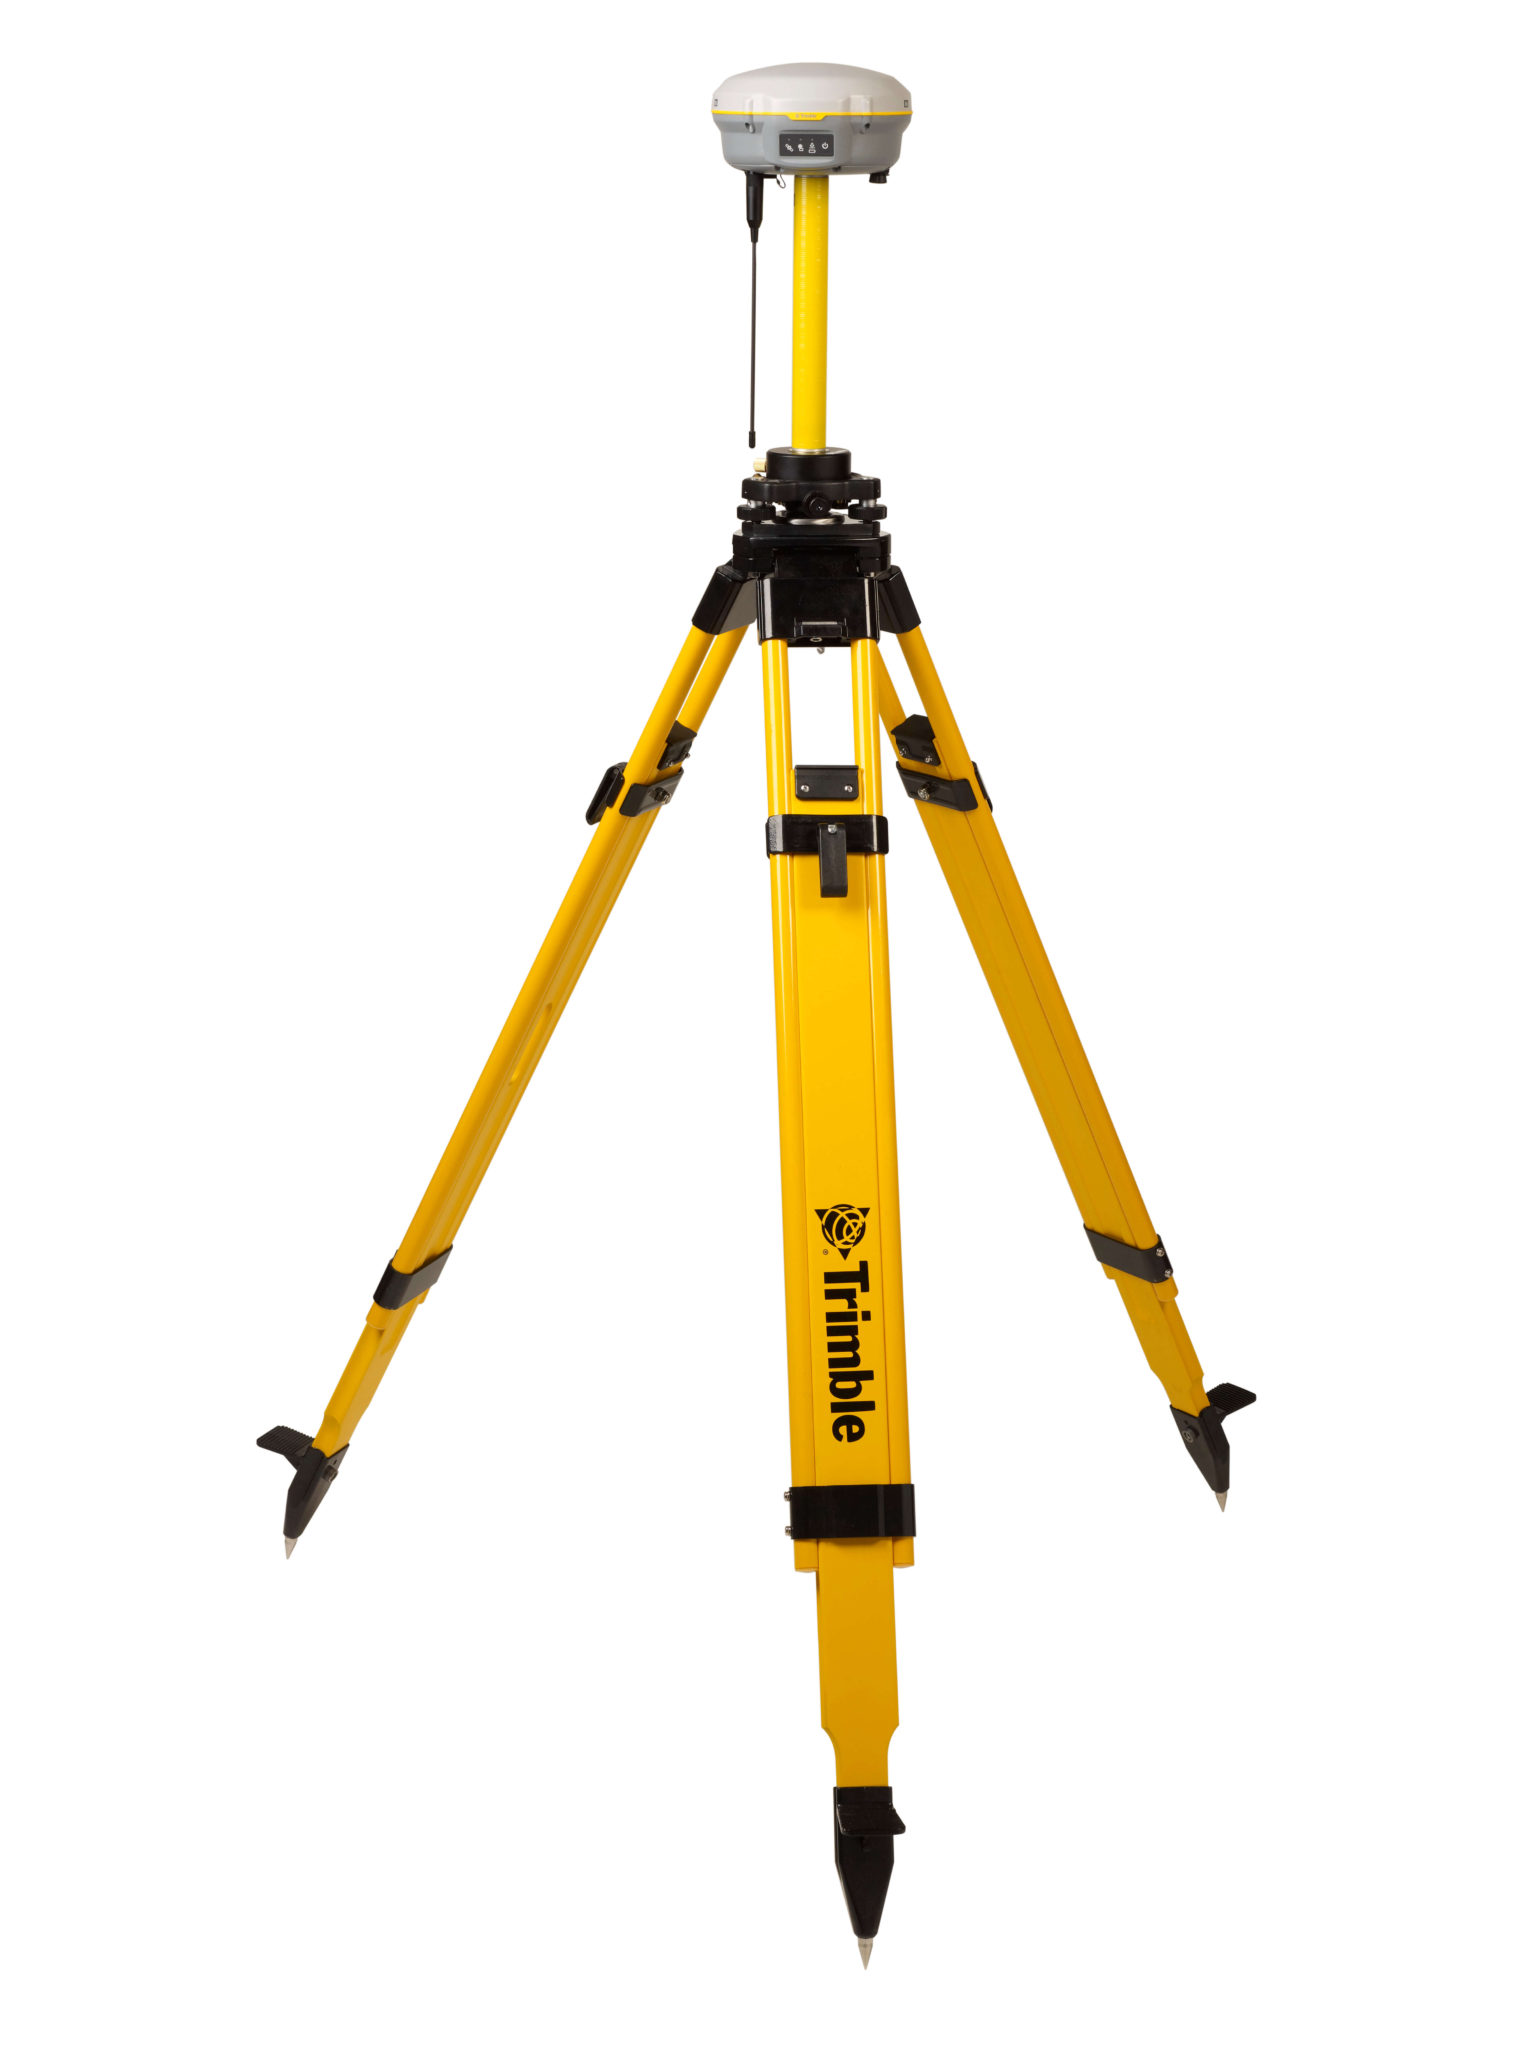 TrimbleR8s%20Studio%20Base%20Tripod%20Cellular%20PoleExtension%20frontal